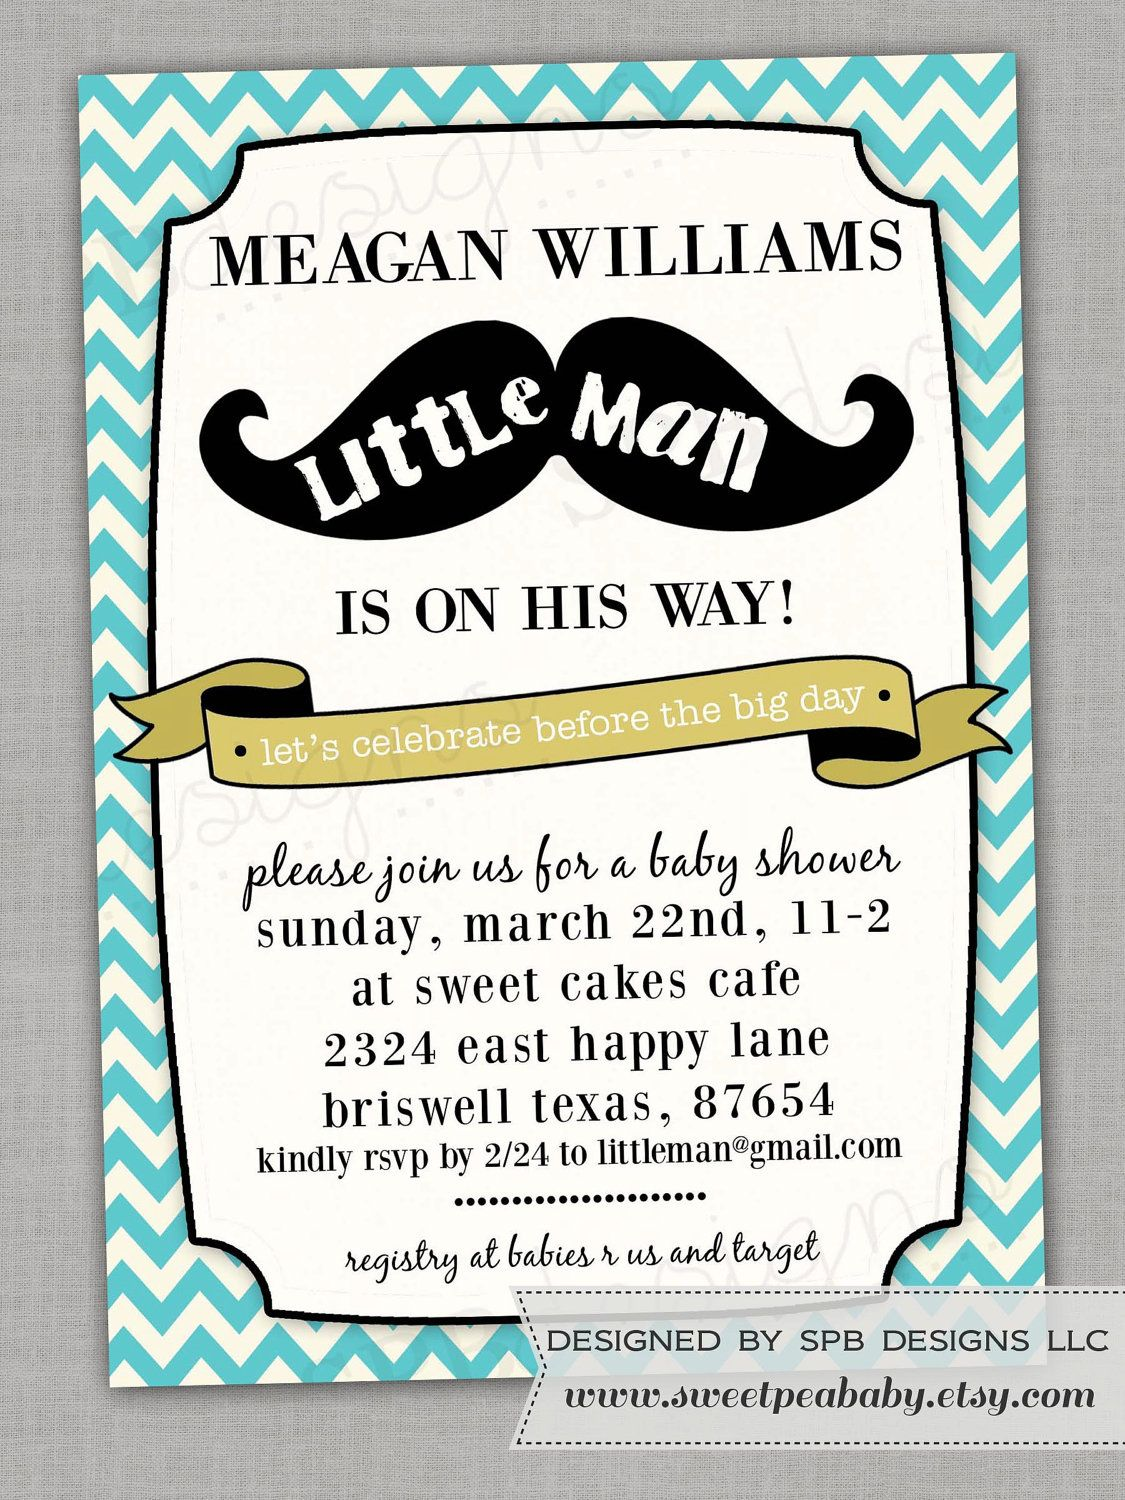 Bow-tie instead of mustache {h} | Little Man Shower | Pinterest ...